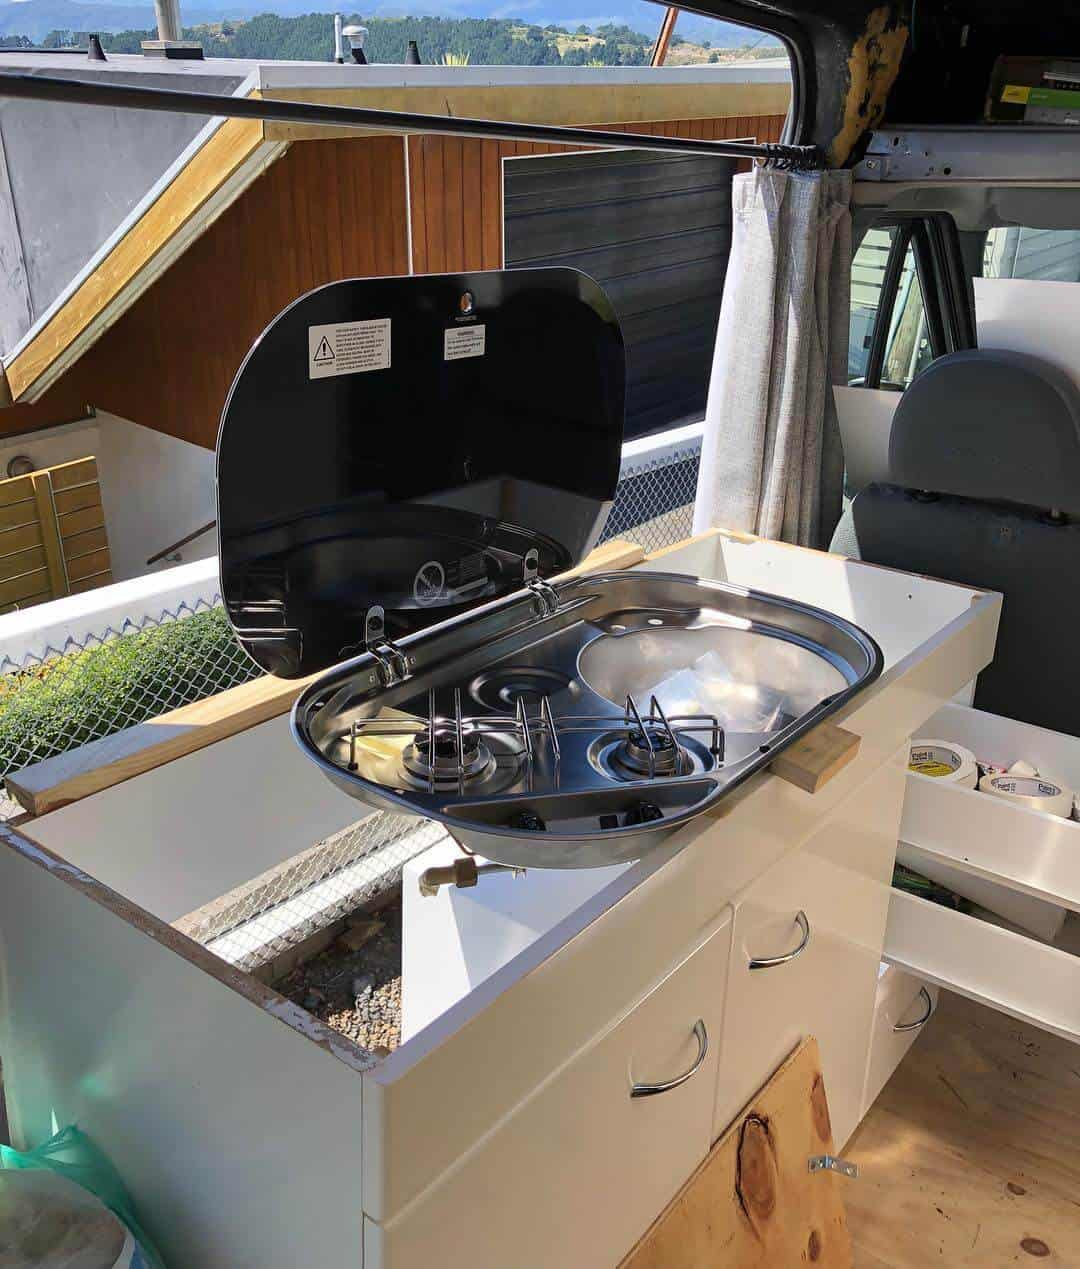 All-in-one campervan kitchen includes the sink, a faucet and a stove